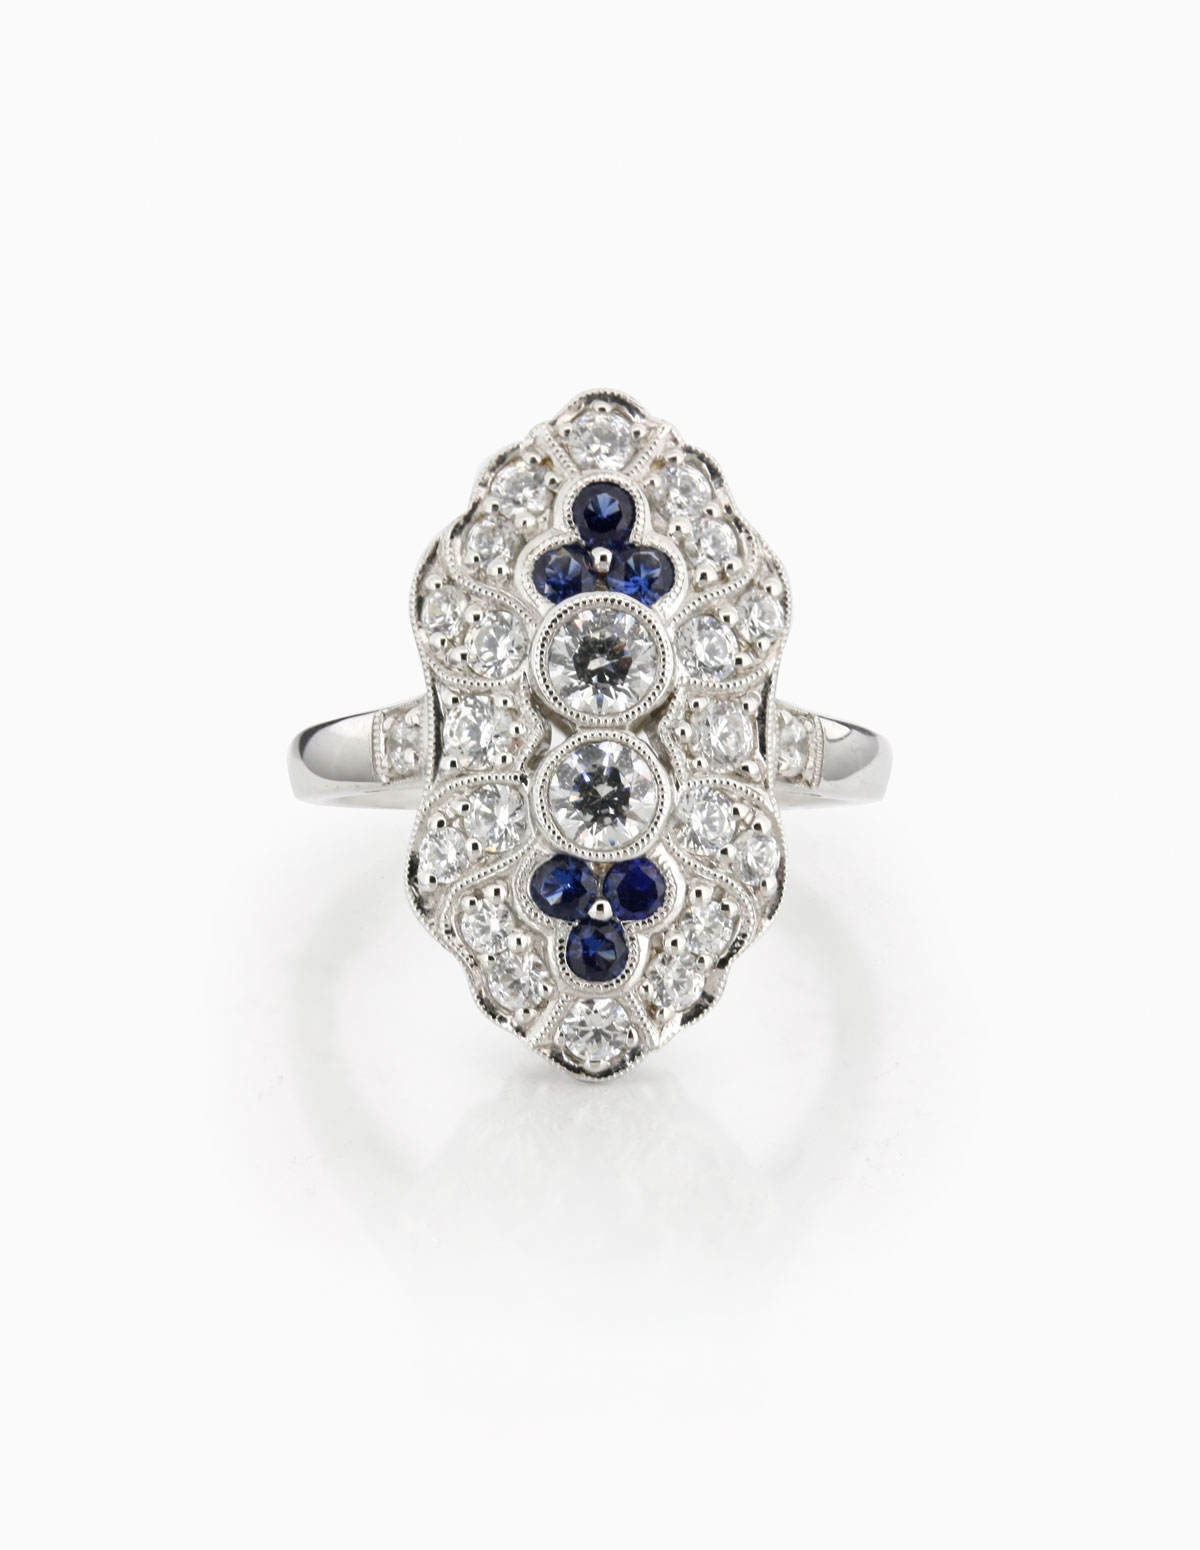 Diamond & Sapphire Vintage Style Ring – Thejewelleryworkshop For Best And Newest Diamond Vintage Style Rings (View 4 of 15)